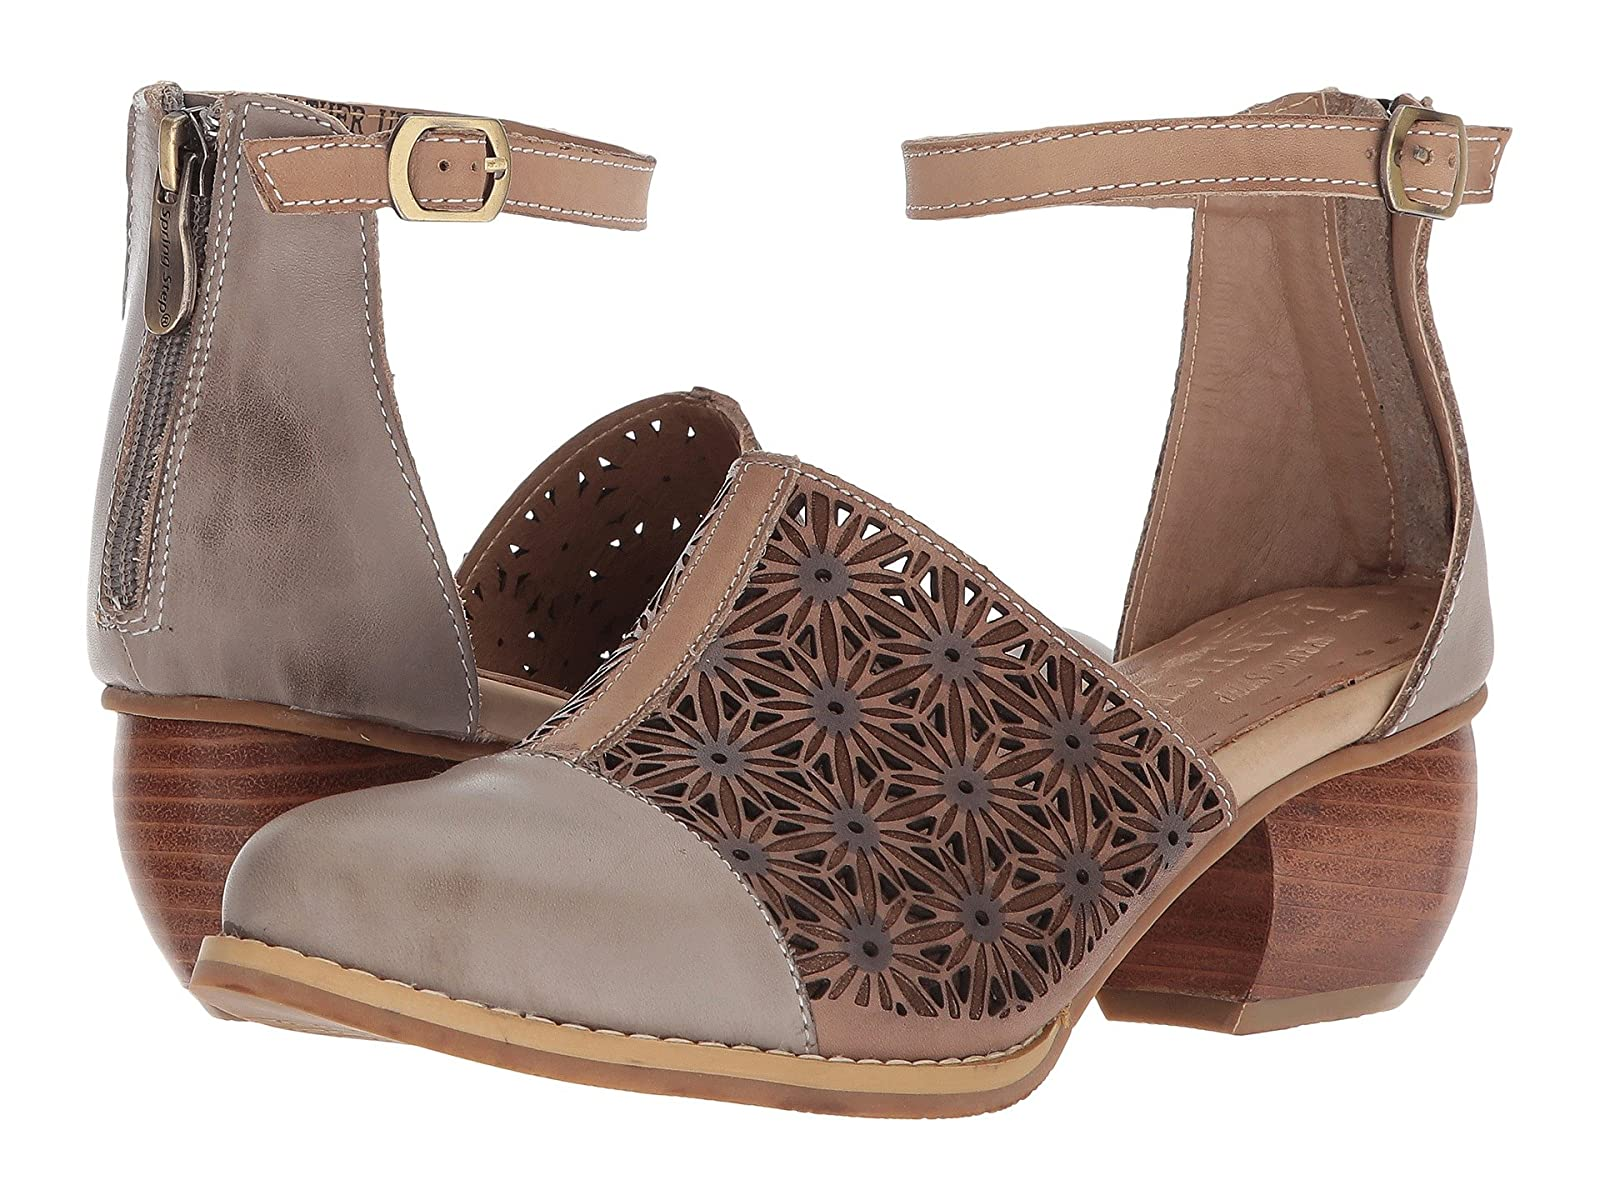 L'Artiste by Spring Step PaulettaAtmospheric grades have affordable shoes